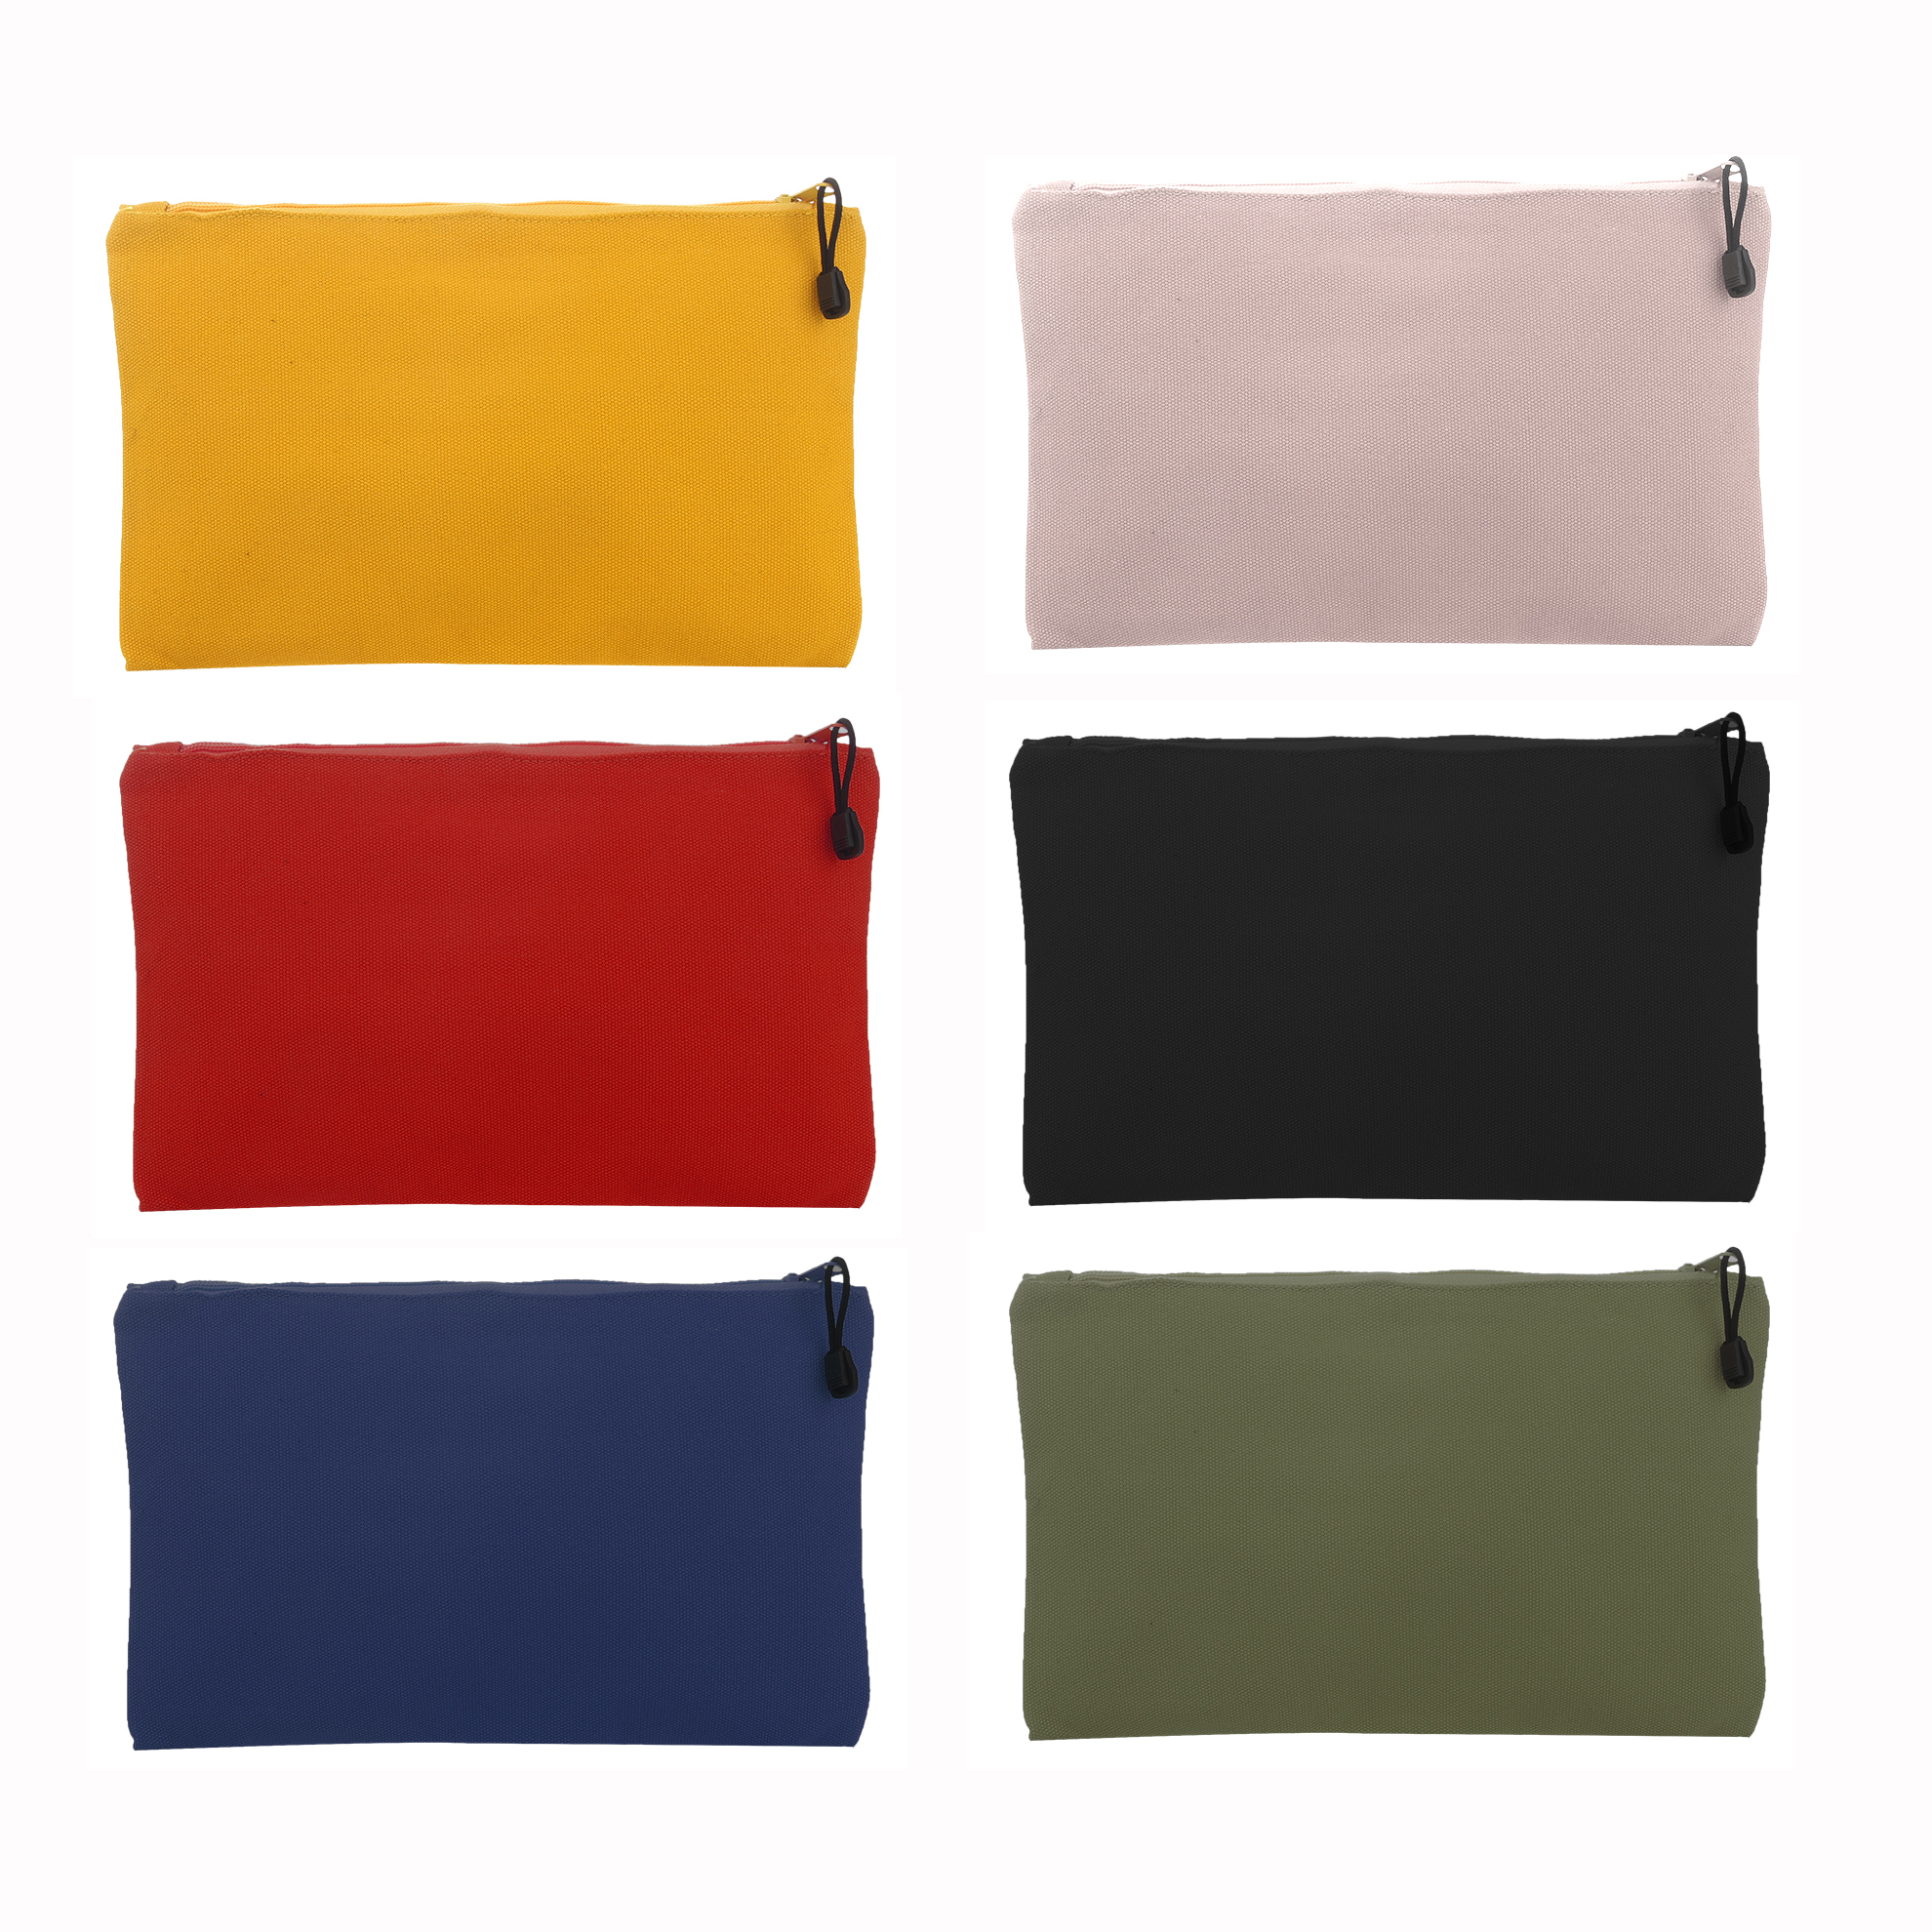 Bright Creations 6 - Pack Canvas Tool Pouch Zipper Bags - Color Cotton Tools Bag 11.5 X 7 Inches